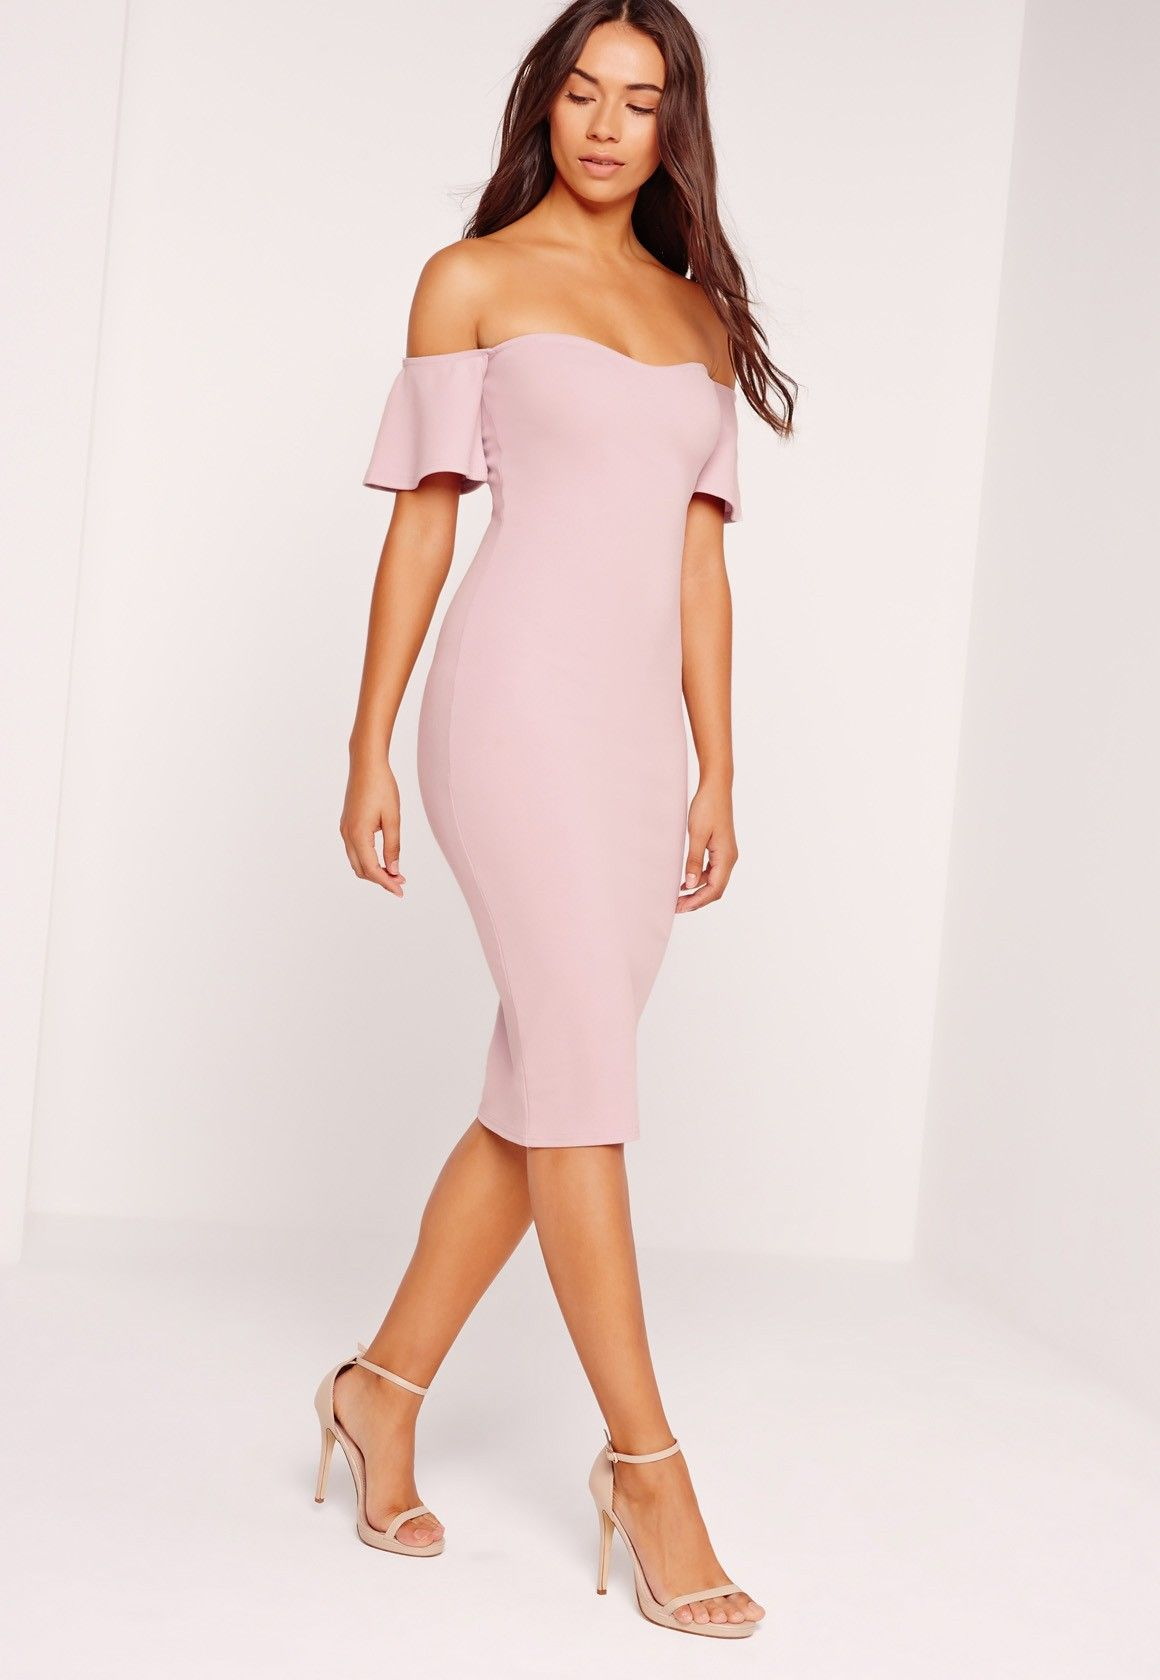 32b926fed2 Bardot dresses are what every Missguided girls wardrobe is craving this  season! In a dreamy mauve shade